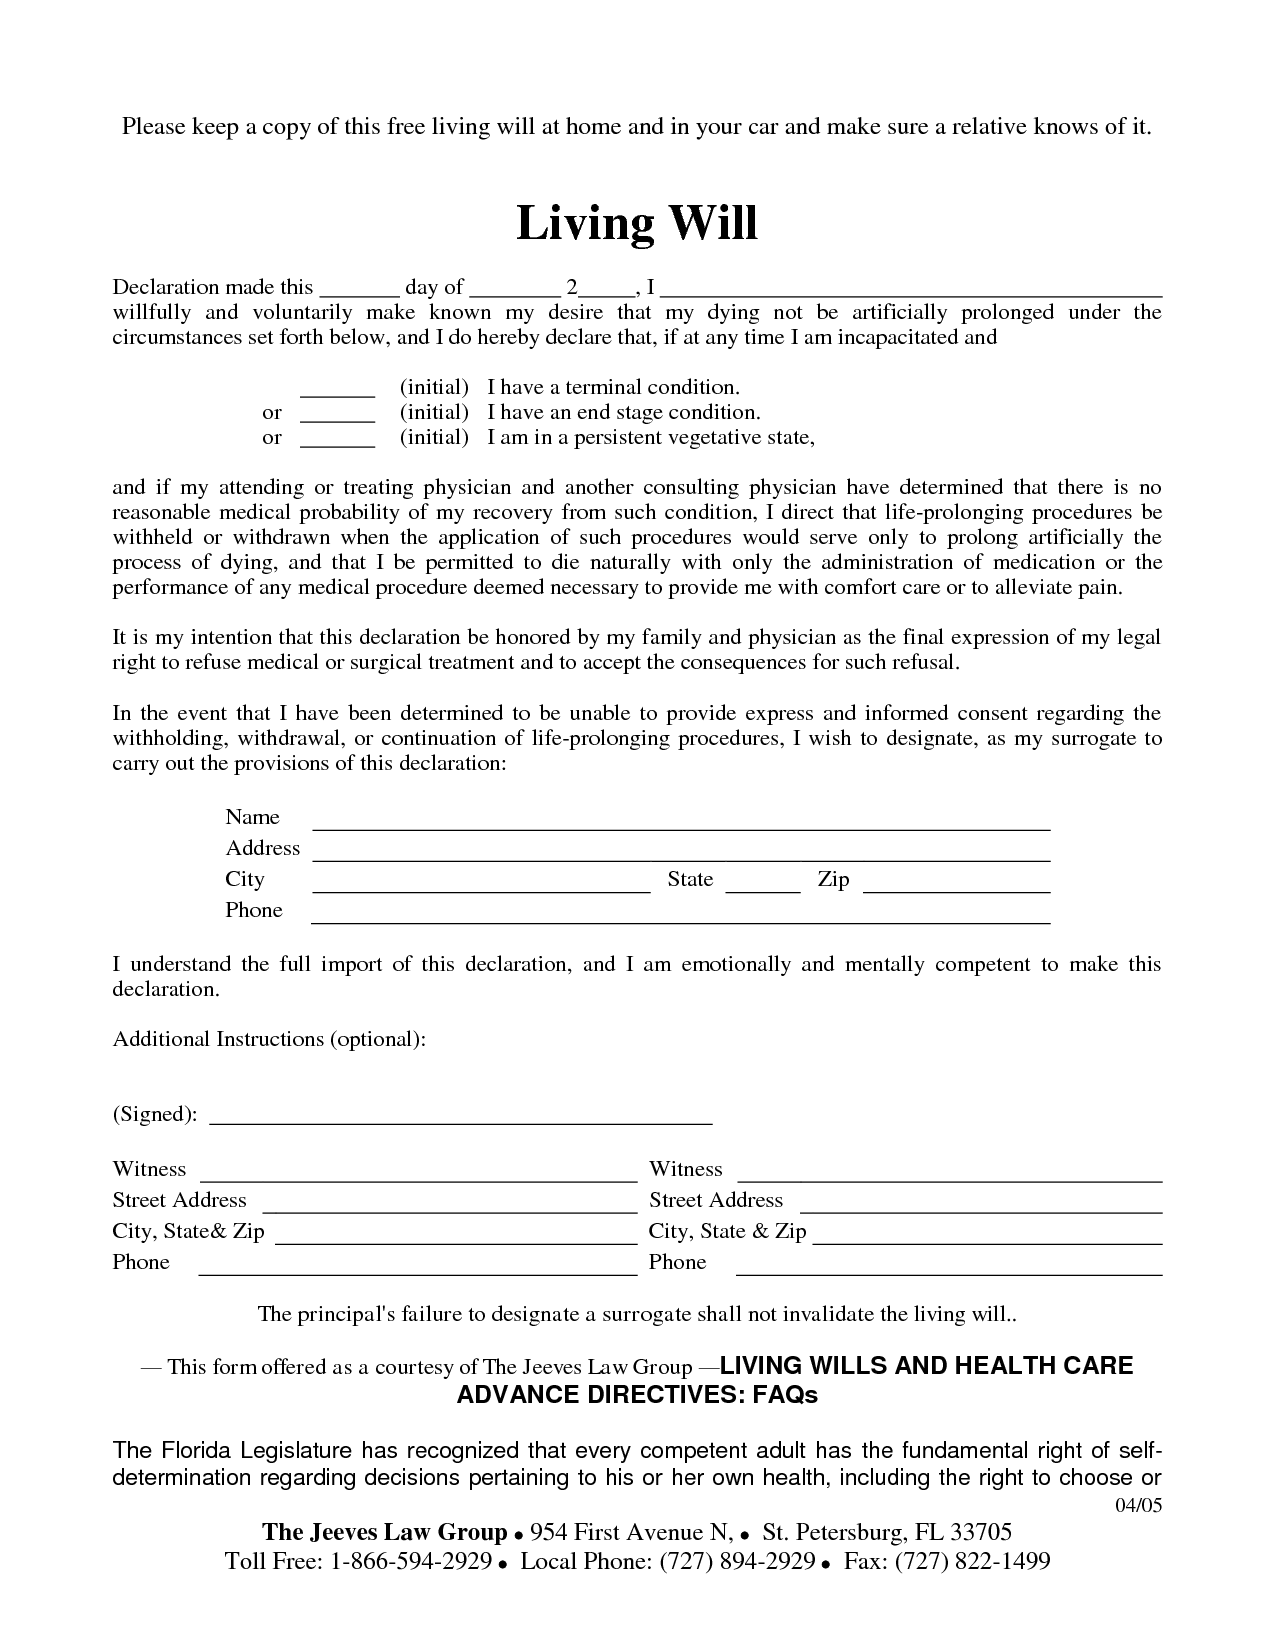 Free copy of living will by richardcataman living will sample free copy of living will by richardcataman living will sample falaconquin